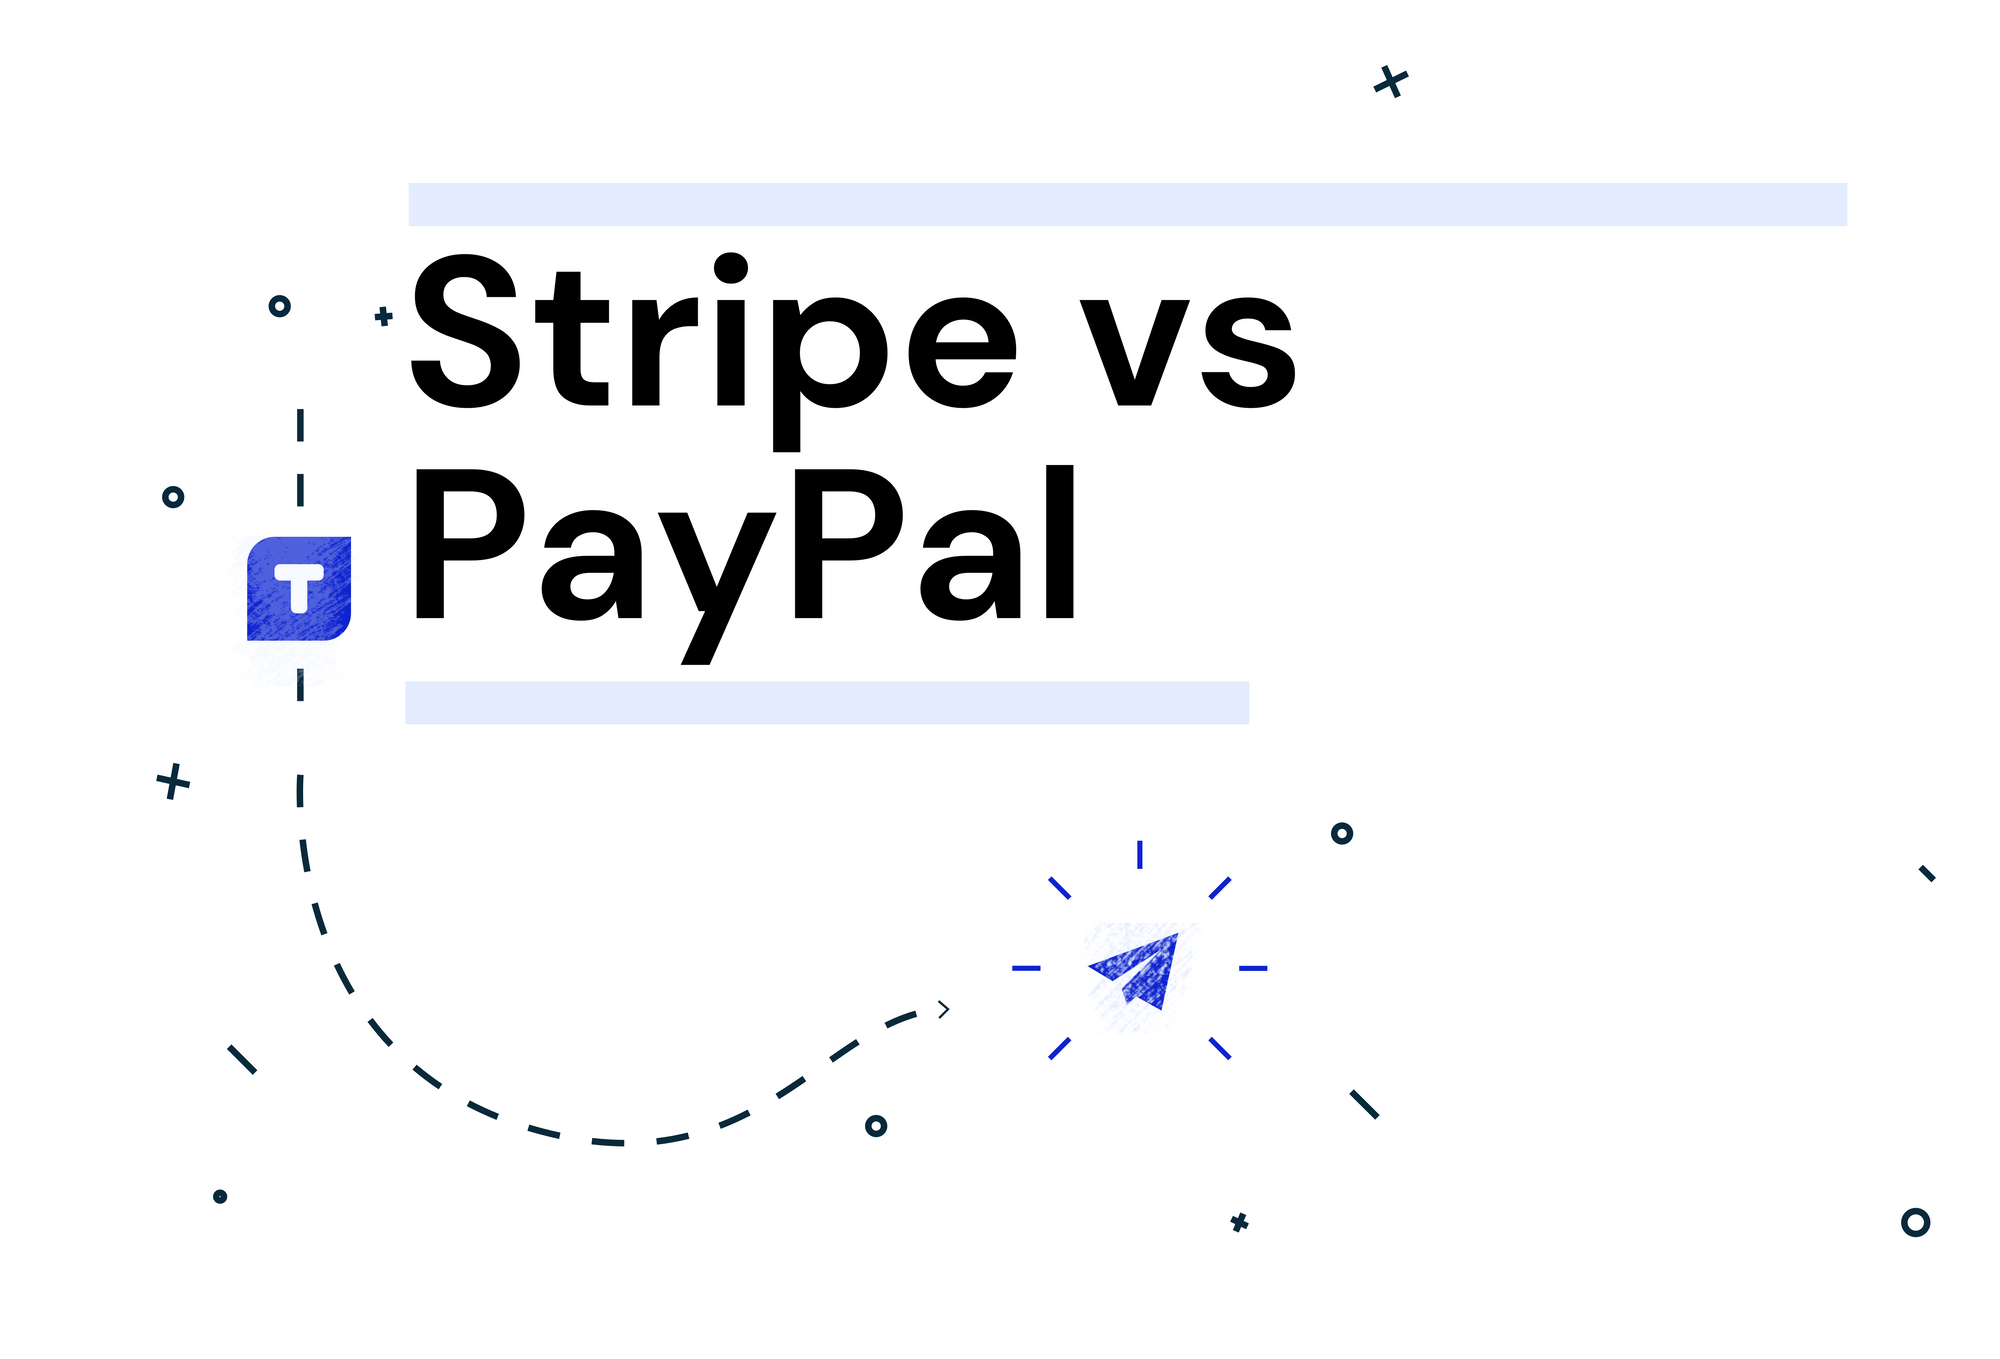 Stripe vs. Paypal: Which One Is Better for Growing Businesses?